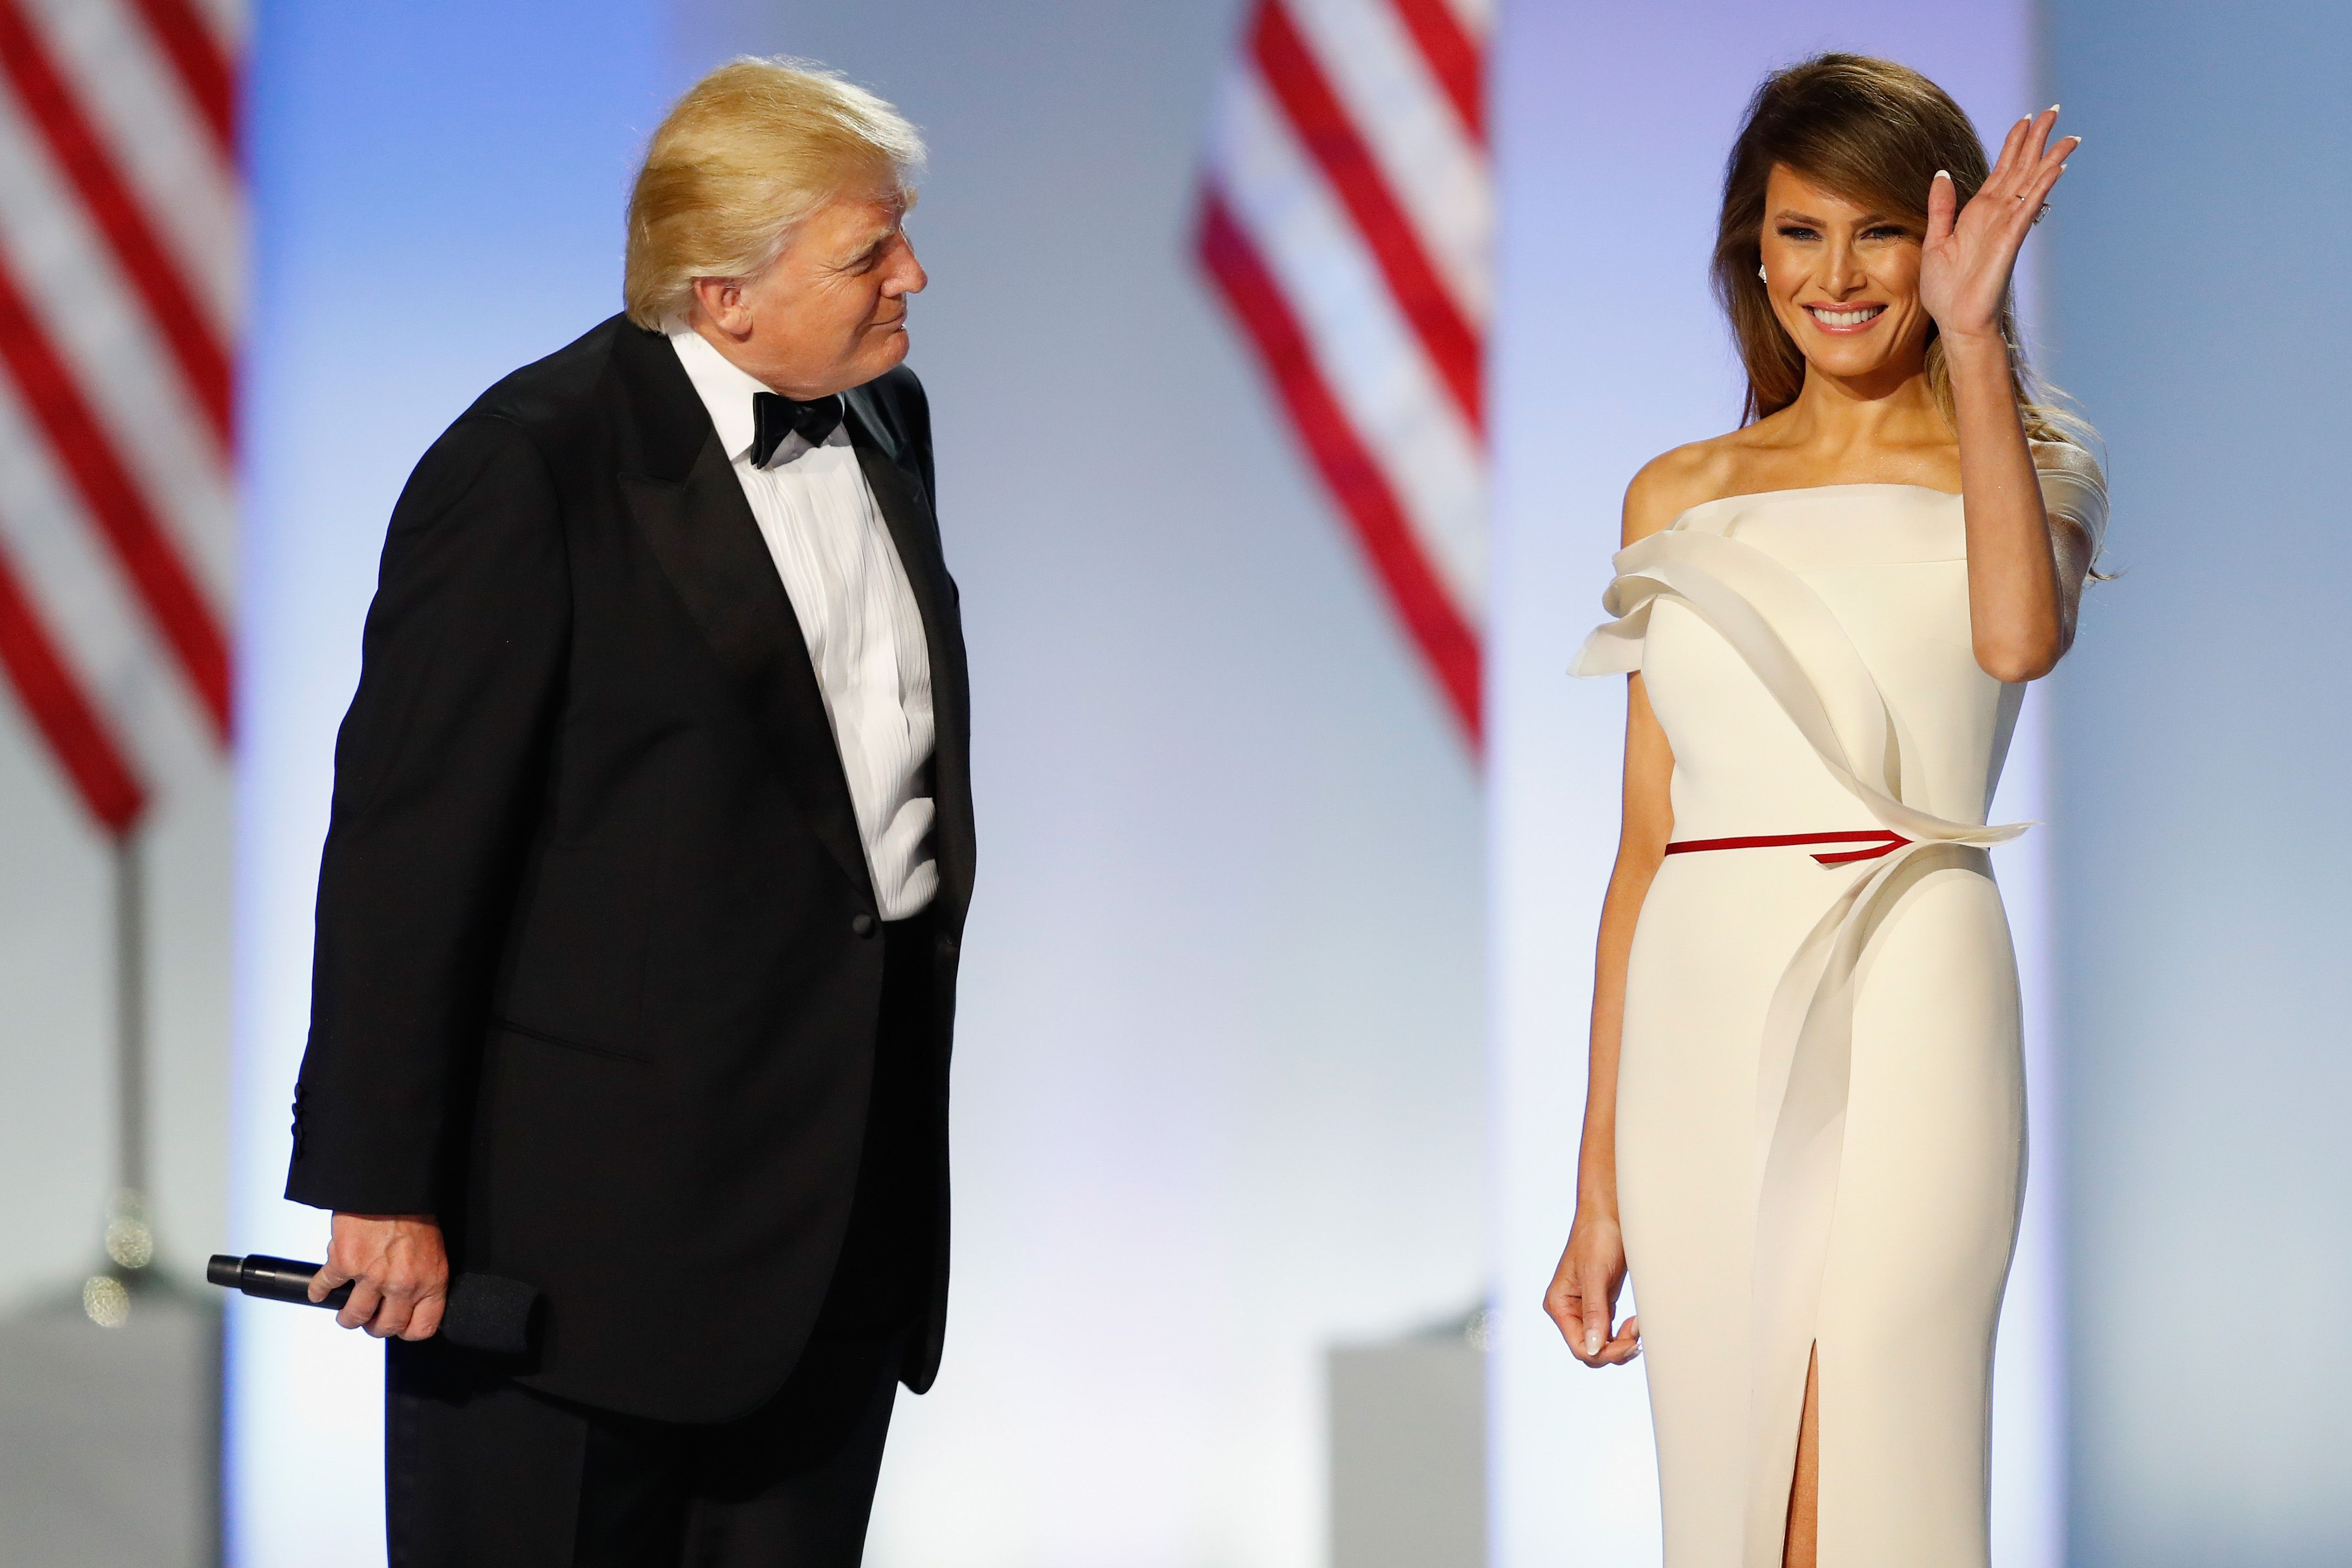 f7ea74c01baa7 11 Facts About Melania Trump - Things You Didn t Know About the ...